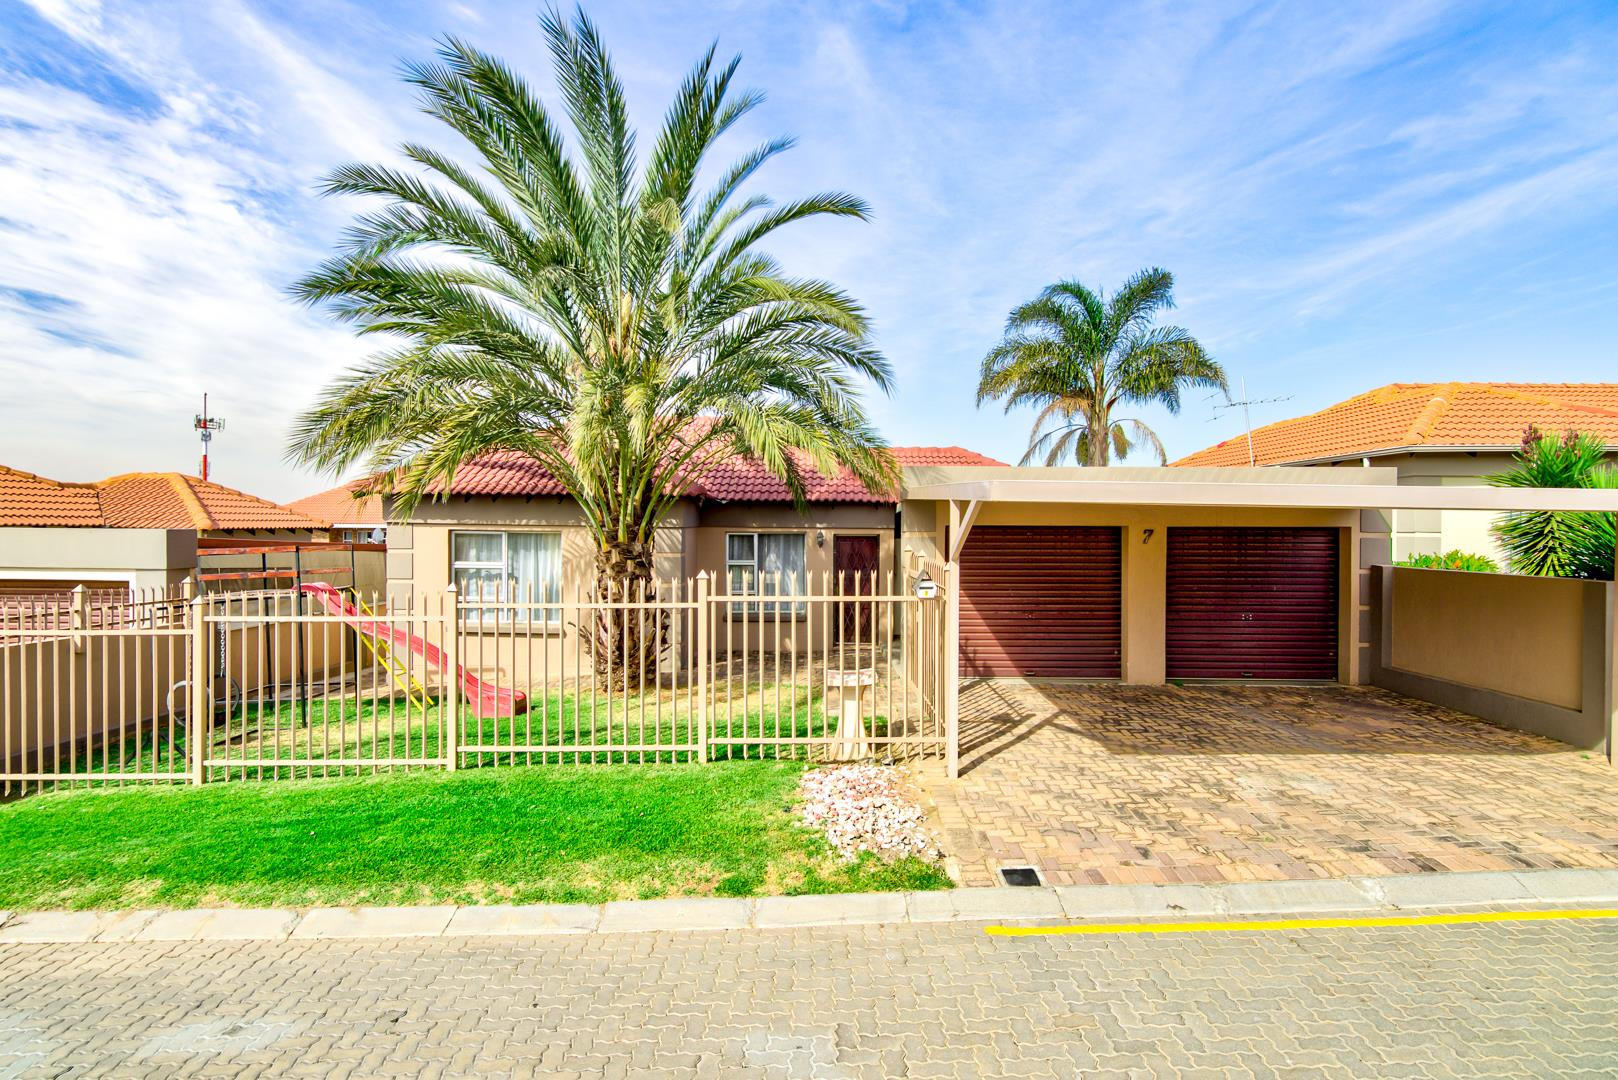 2 Bedroom House For Sale in Birchleigh